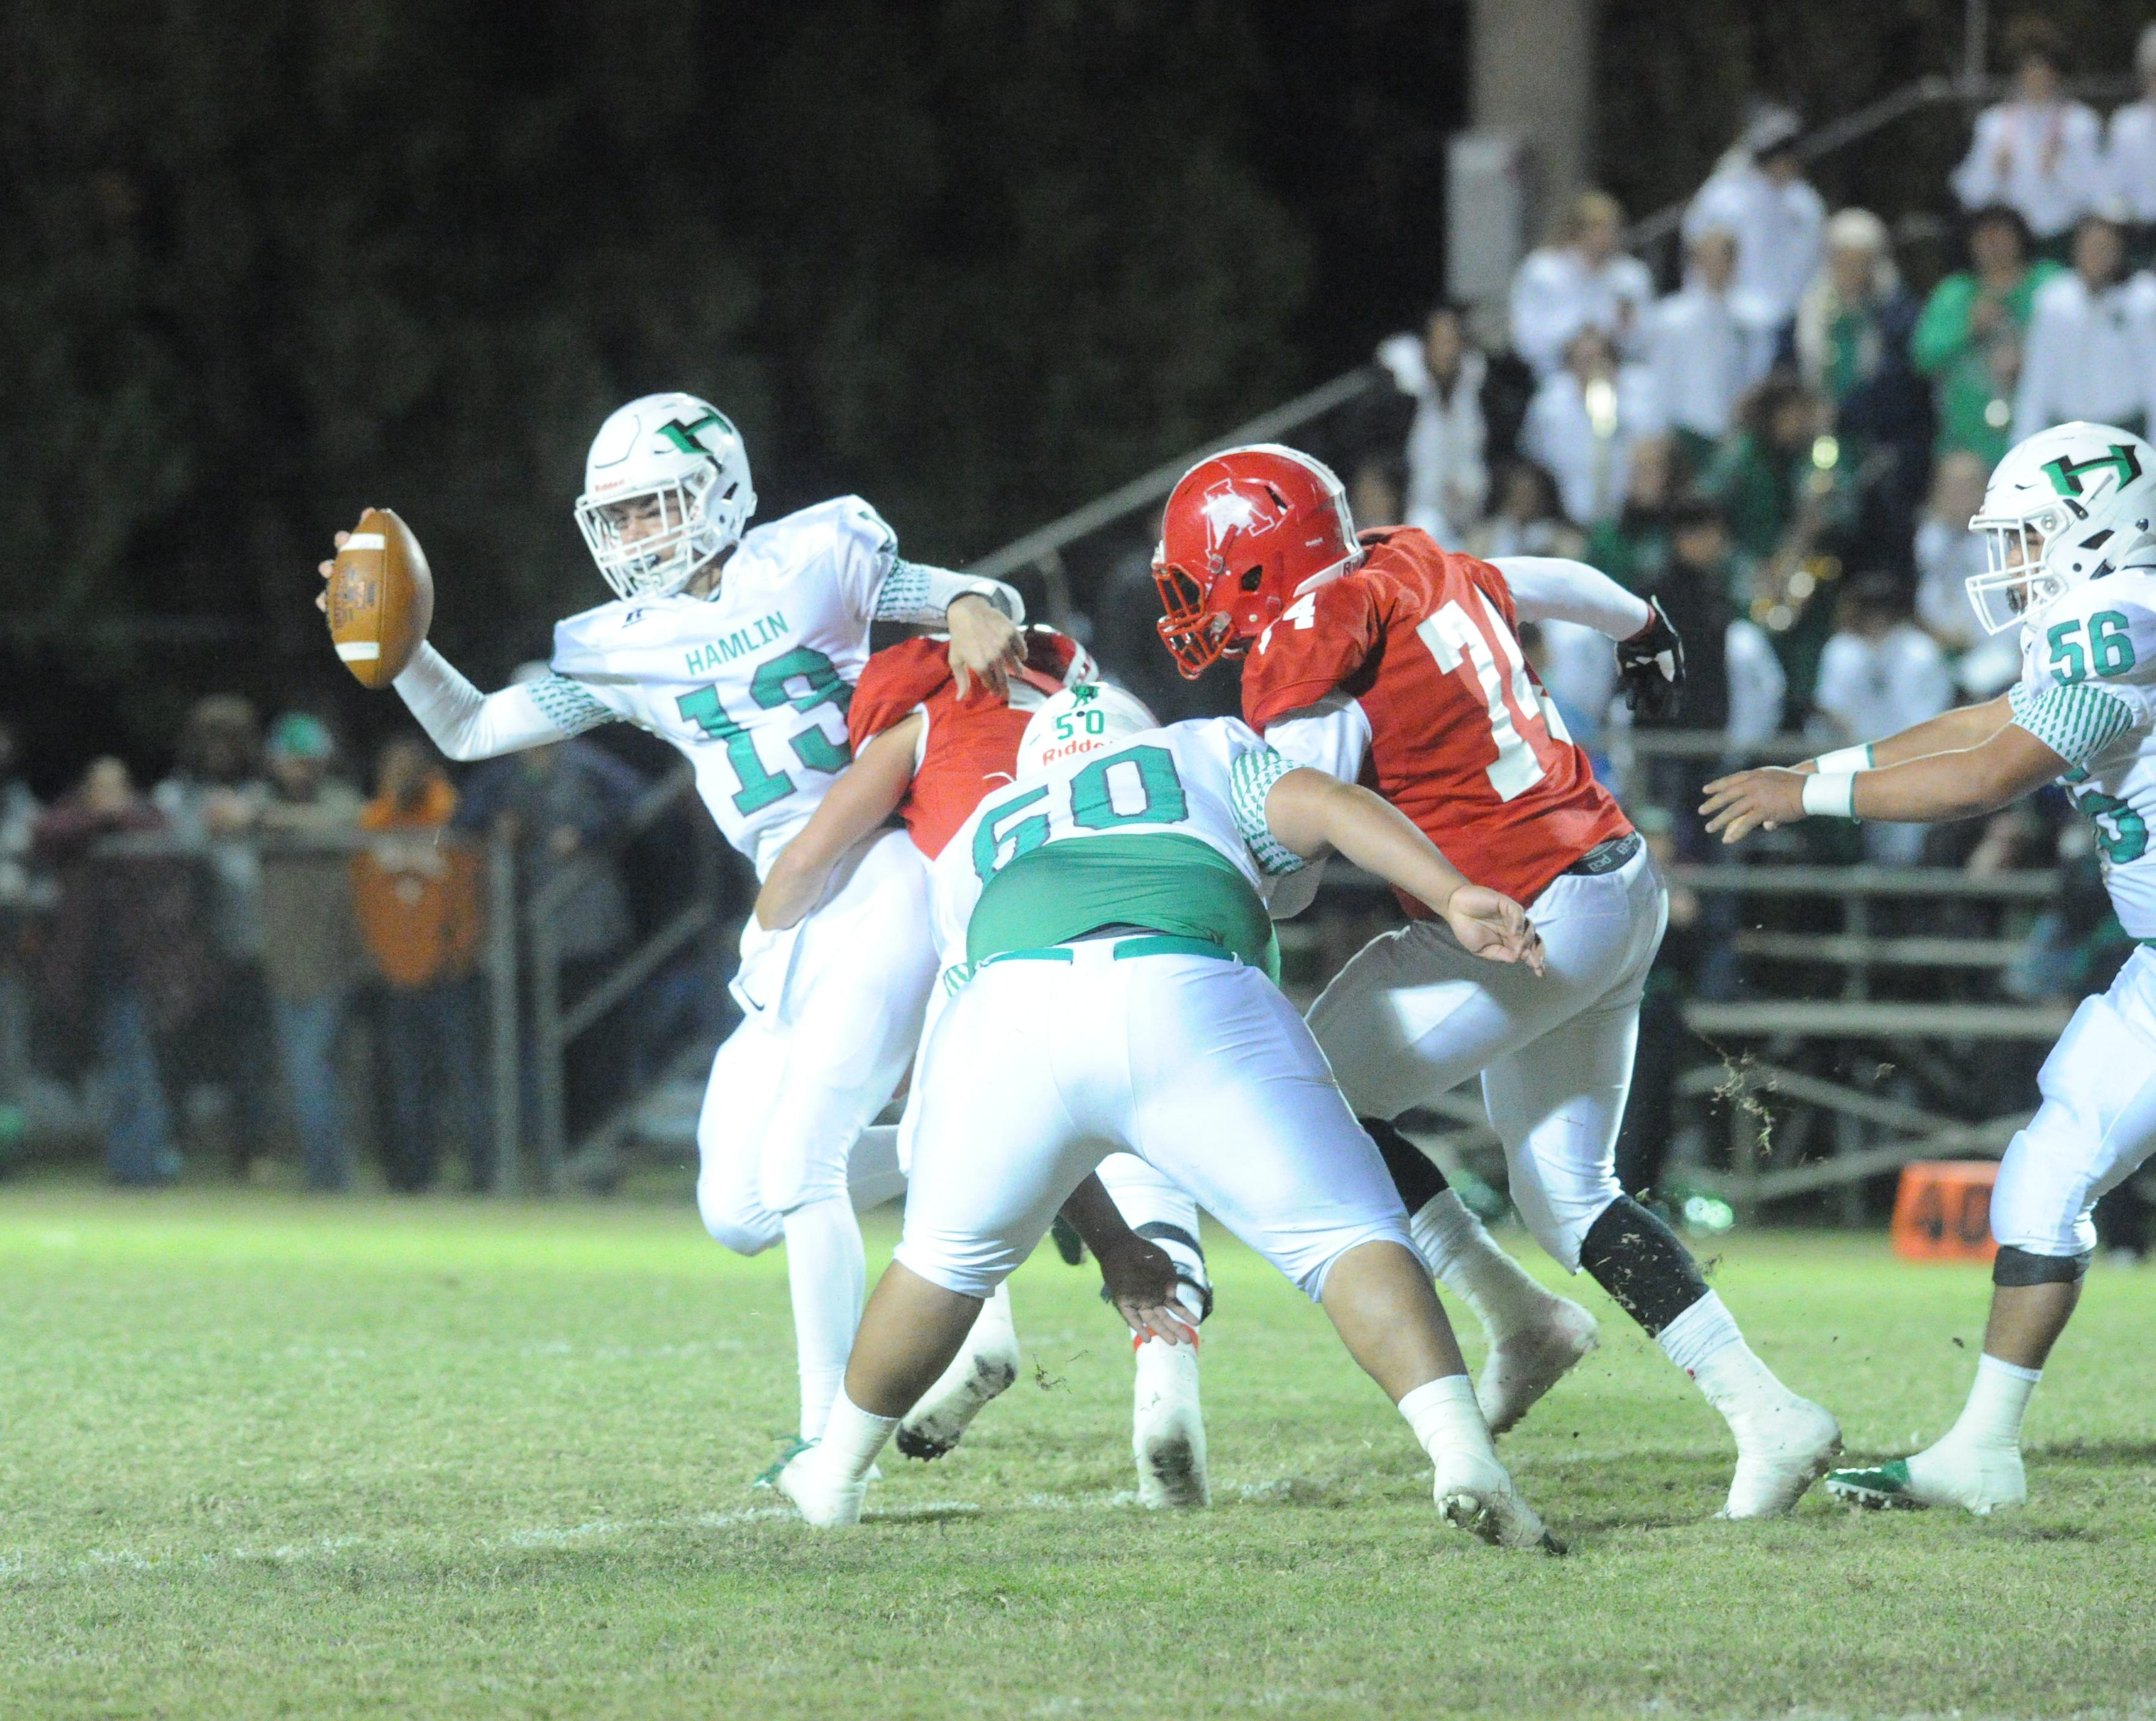 Hamlin sophomore quarterback Braydin Warner (13) is sacked by Albany's Payne Hebel as Coby Knight (74) closes in Friday night.